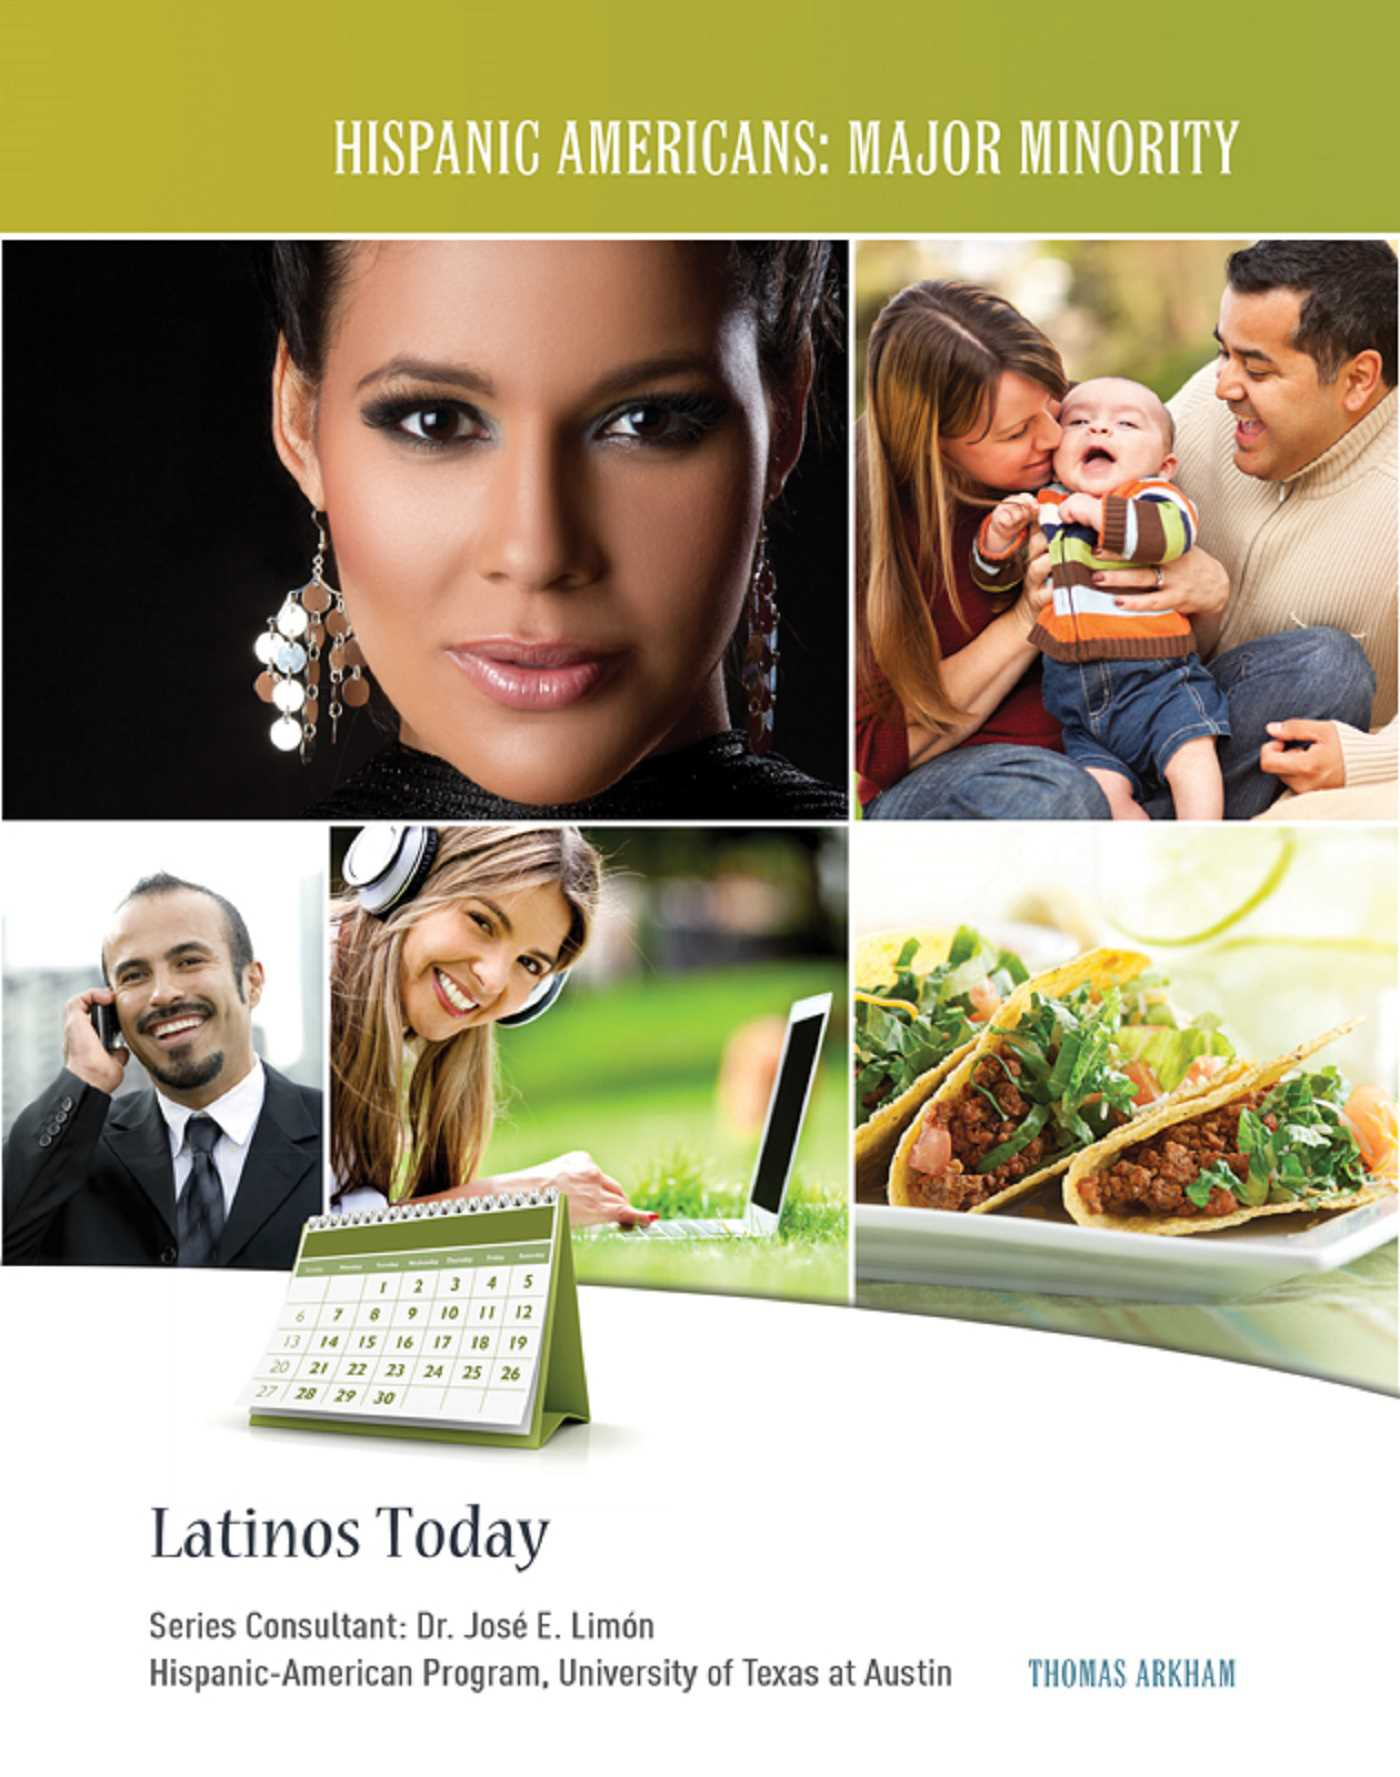 hispanic latino americans The terms hispanic, latino, spanish, etc are often misinterpreted, confused, and misused, so we aim to help clear up the differences between each term learn the differences between spanish vs hispanic, latin american vs latino, spanish vs latino, and more.